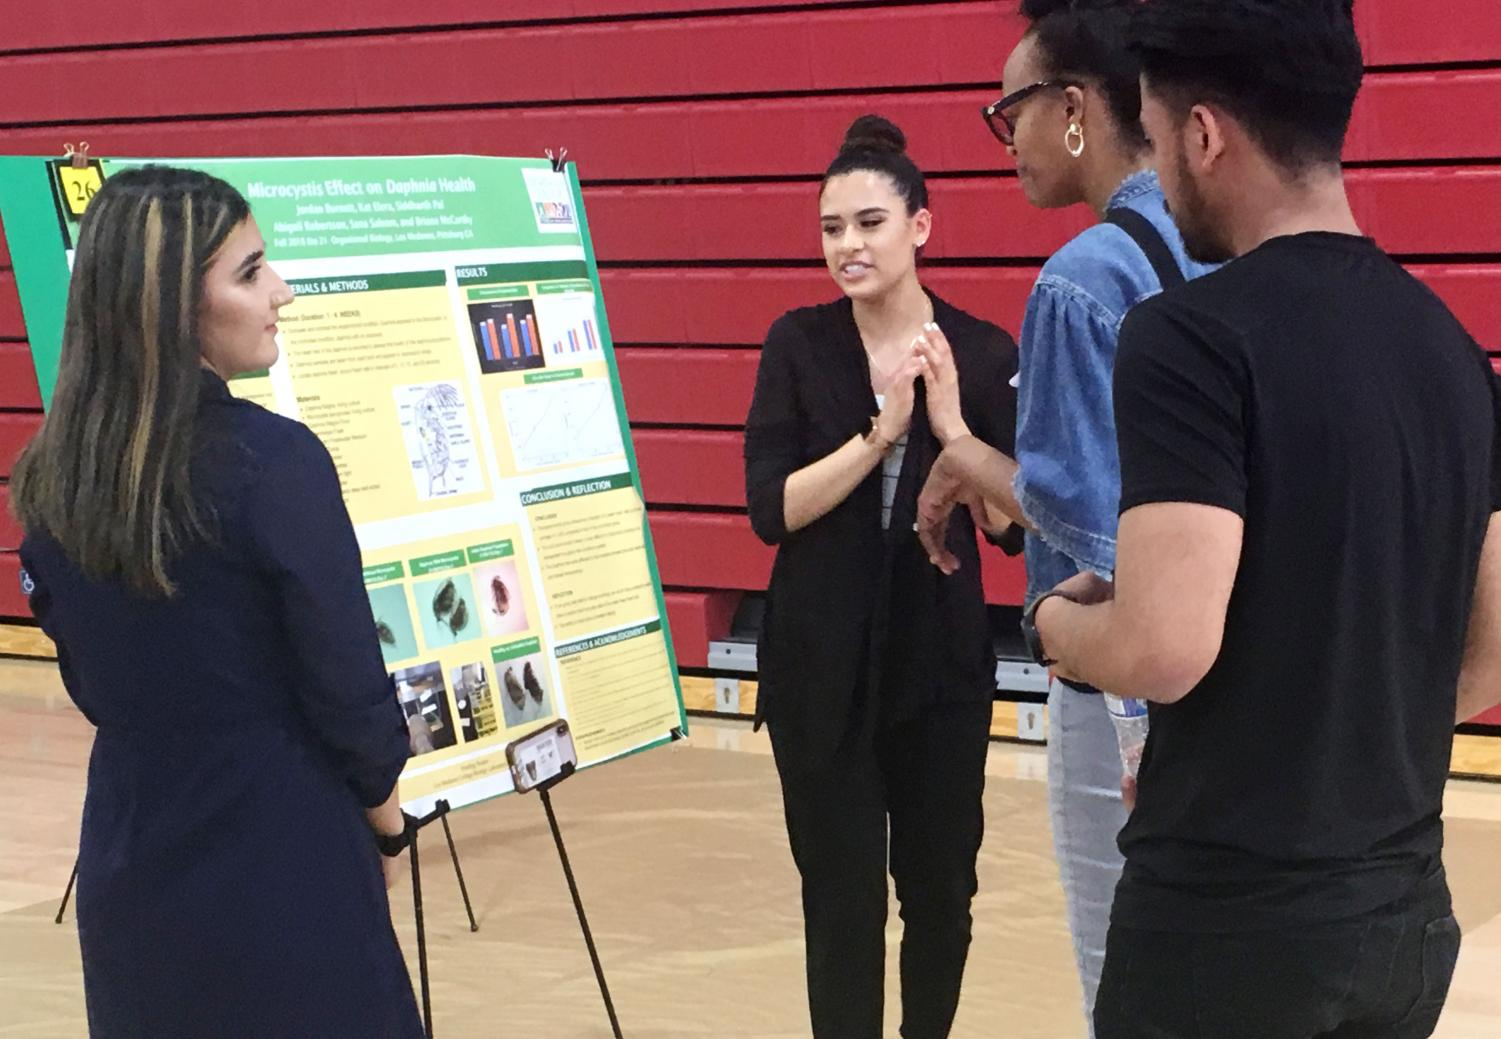 Sana Saleem (left) and Kat Elera present their poster about research on Daphnia to students.